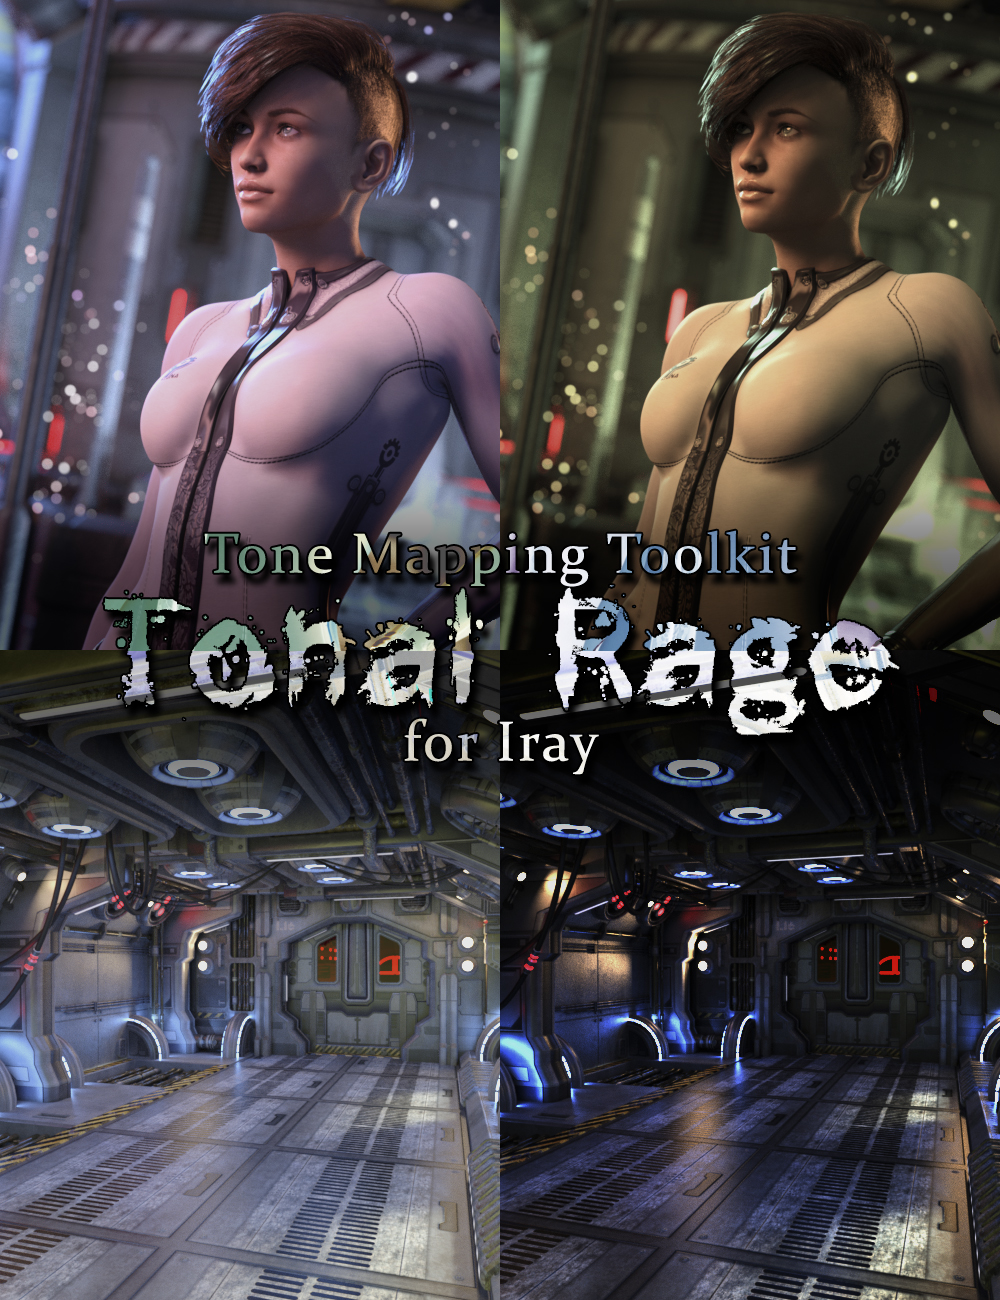 Tonal Rage - Tone Mapping Toolkit for Iray by: DimensionTheory, 3D Models by Daz 3D